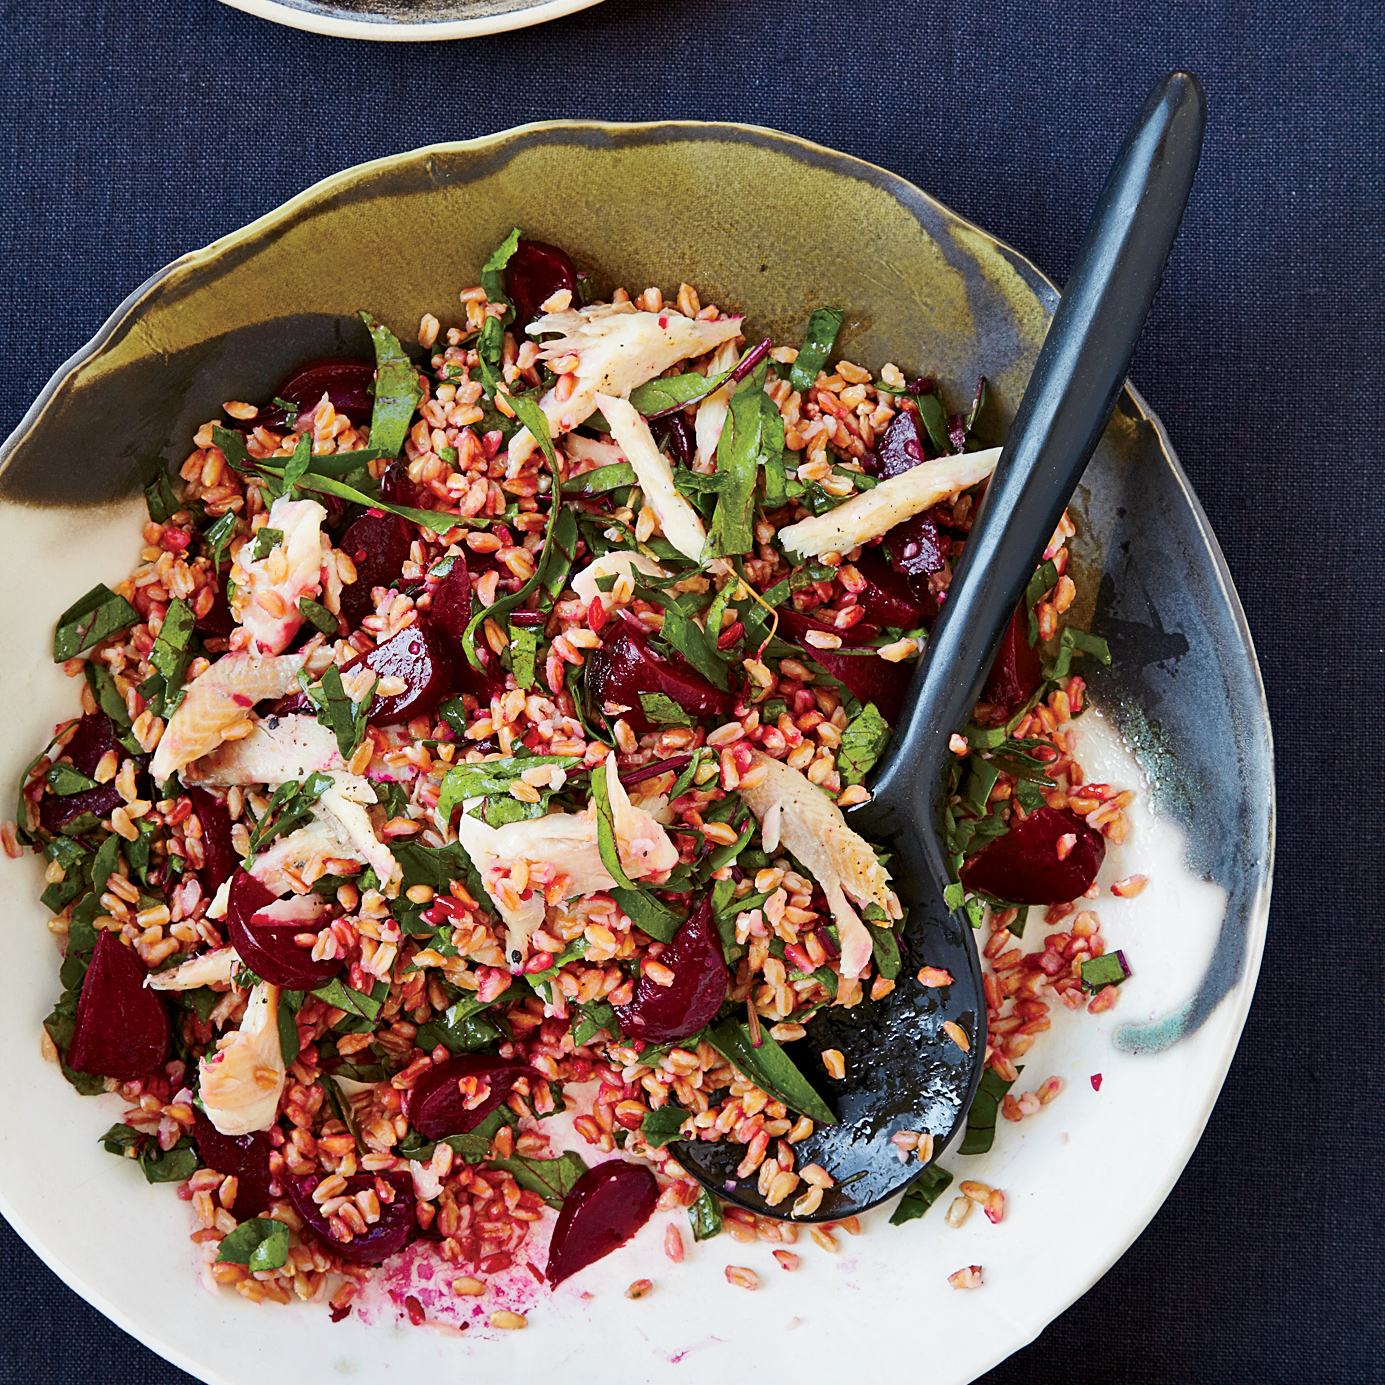 images-sys-201202-r-farro-salad-with-smoked-trout.jpg